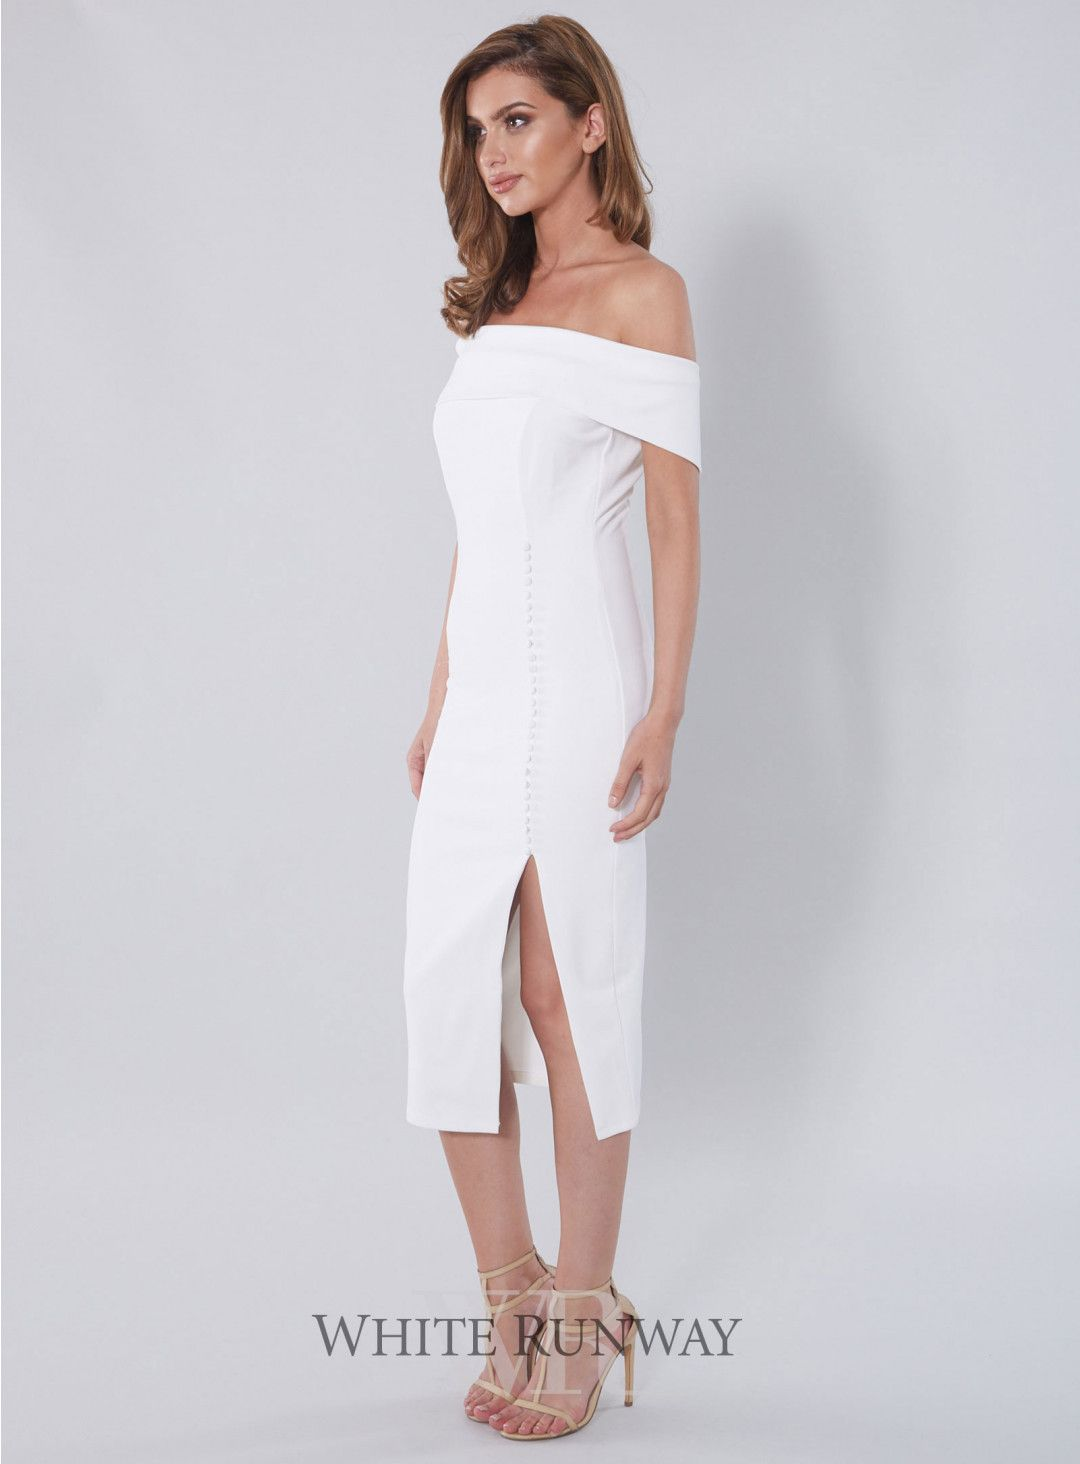 Eva Dress. A chic off-the-shoulder cocktail dress by Giselle ...